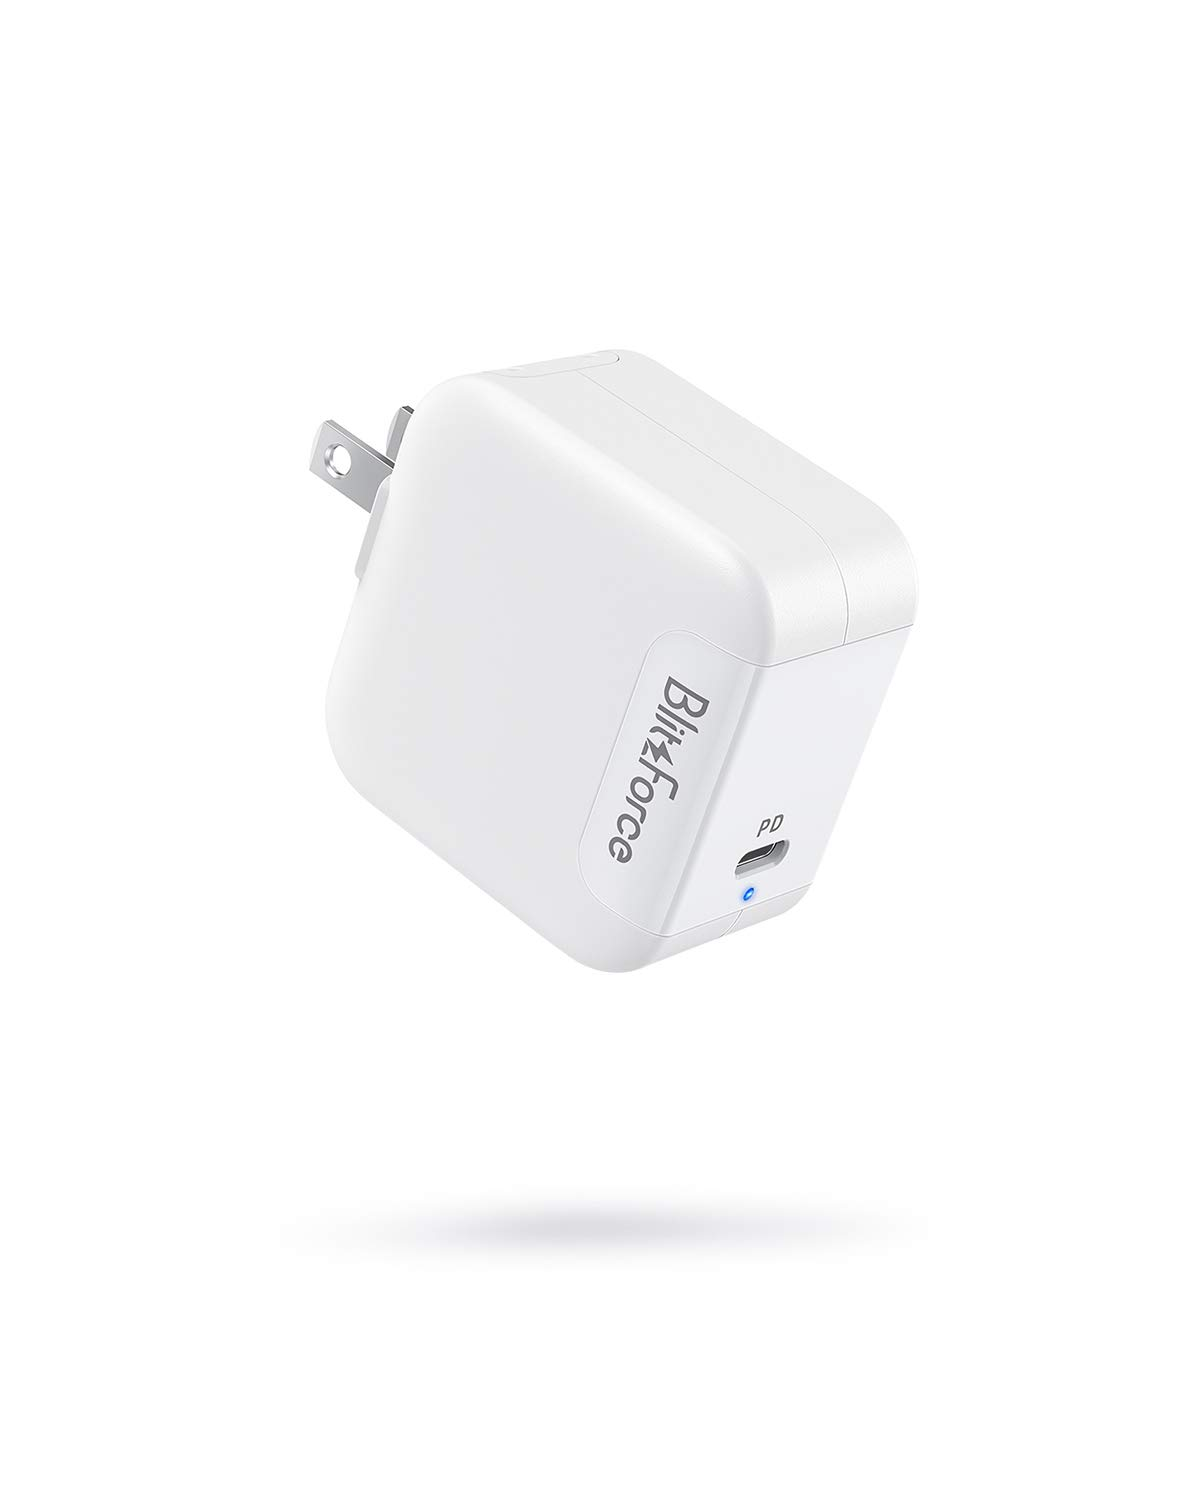 USB C Charger[GaN Tech],Blitzforce 65W PD 3.0 Wall Charger Type C Fast Charging Power Delivery Foldable Adapter for iPhone 11/Pro/Max, MacBook Pro/Air, Ipad Pro and More (White)